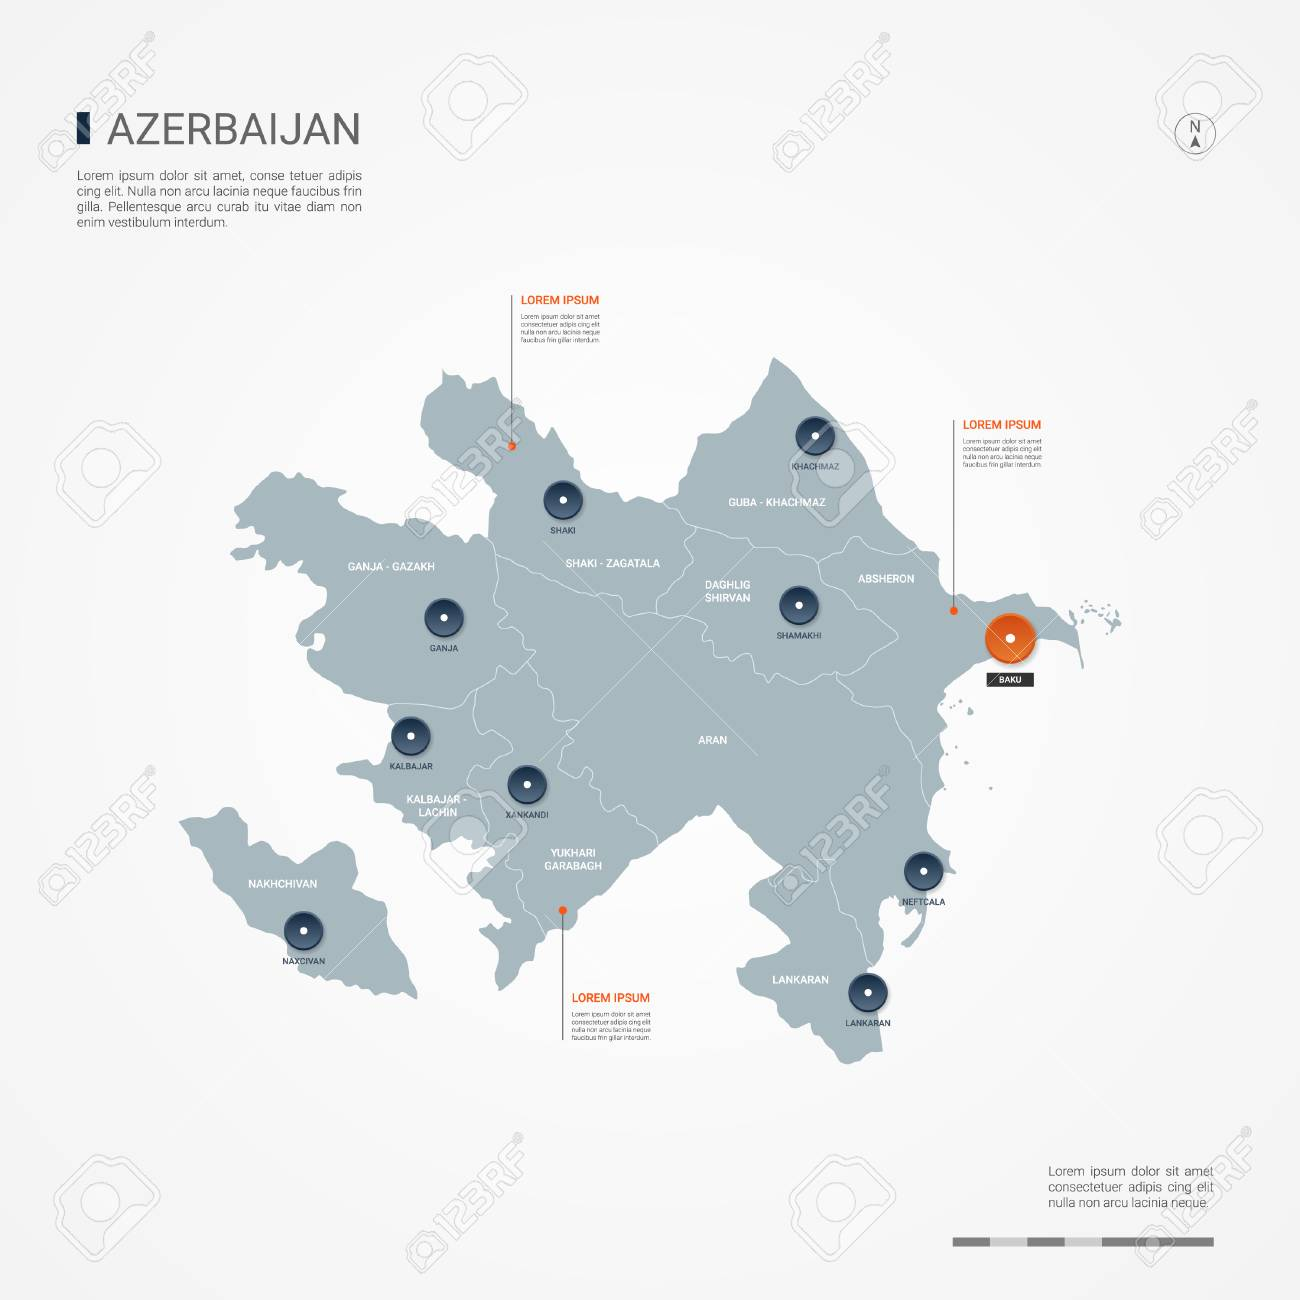 Azerbaijan map with borders, cities, capital Baku and administrative divisions. Infographic vector map. Editable layers clearly labeled. - 107367374